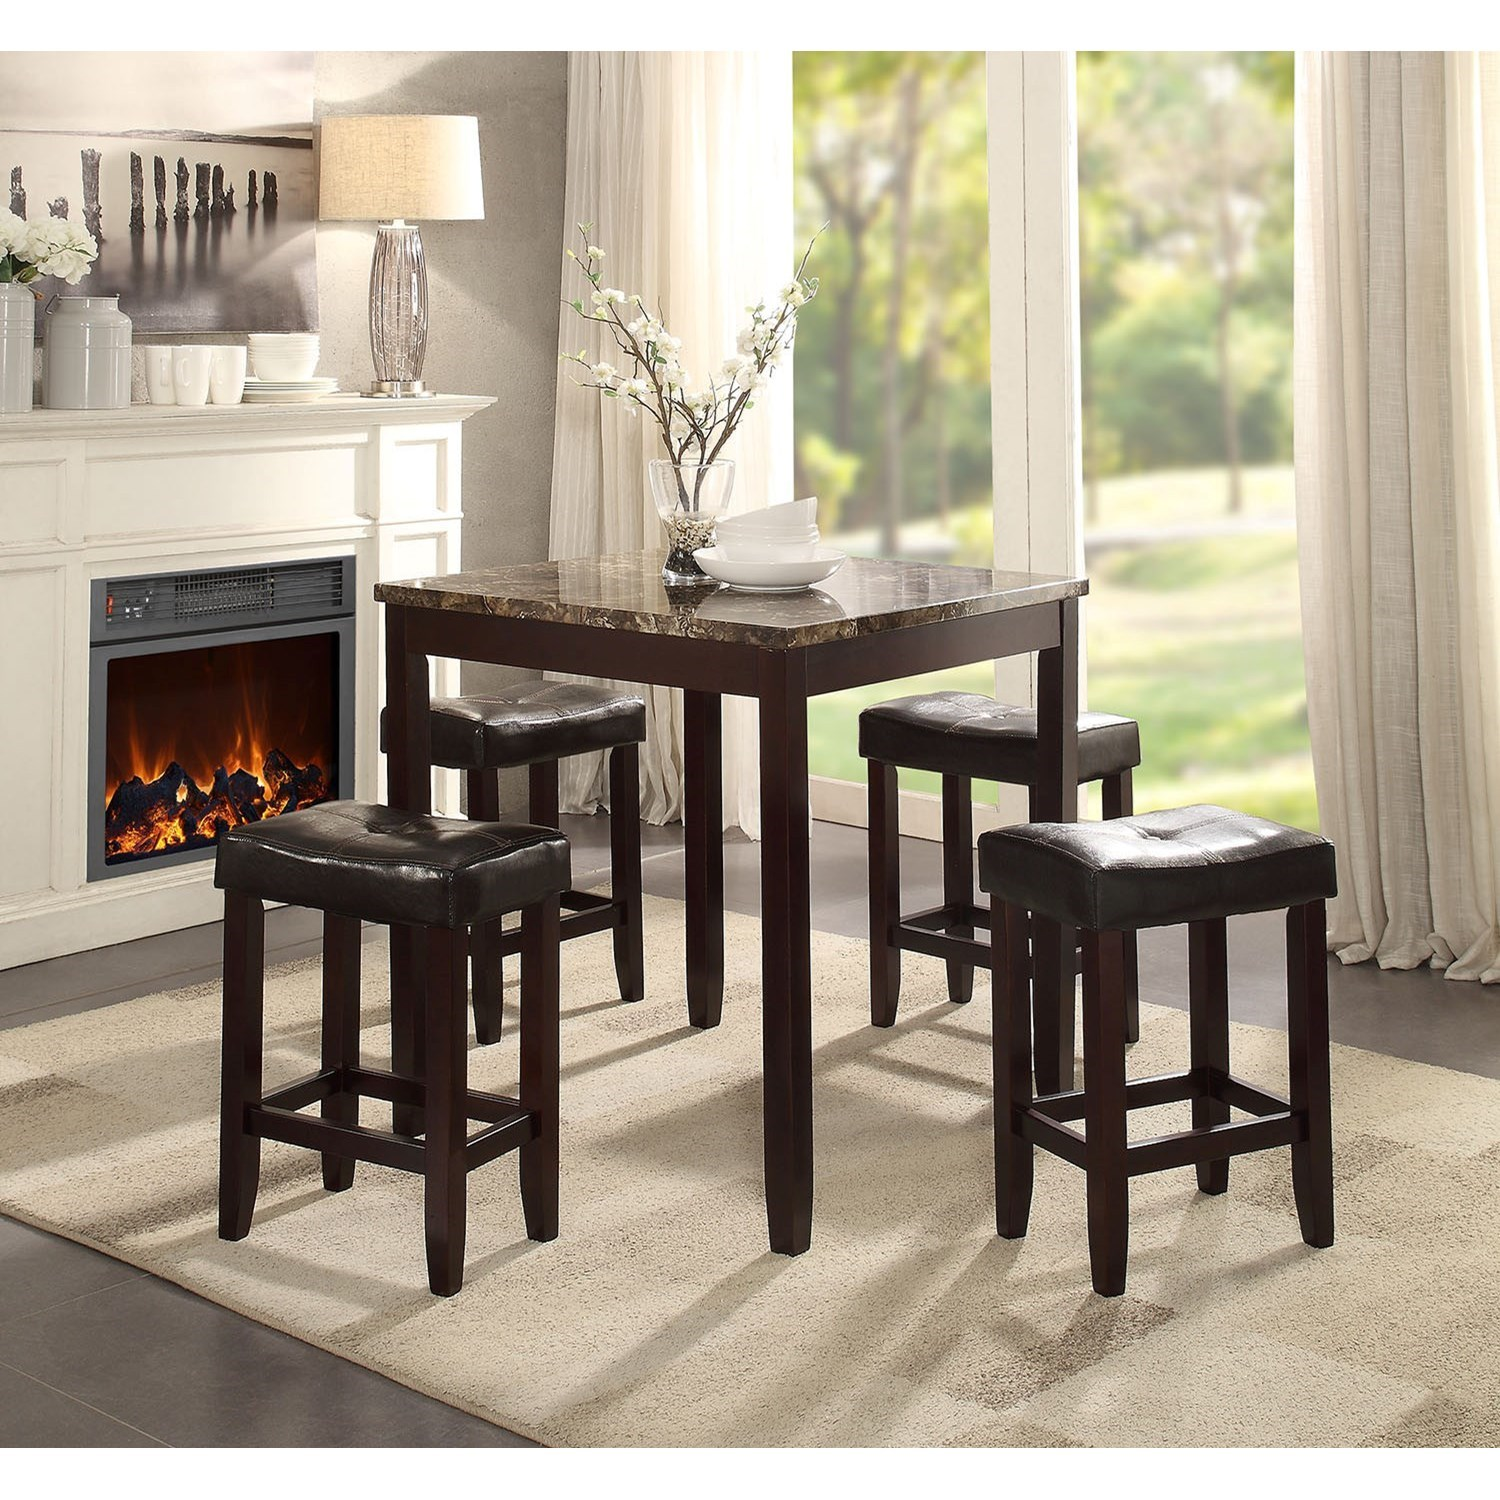 Ainsley 5Pc Pk Counter Height Set by Acme Furniture at Carolina Direct